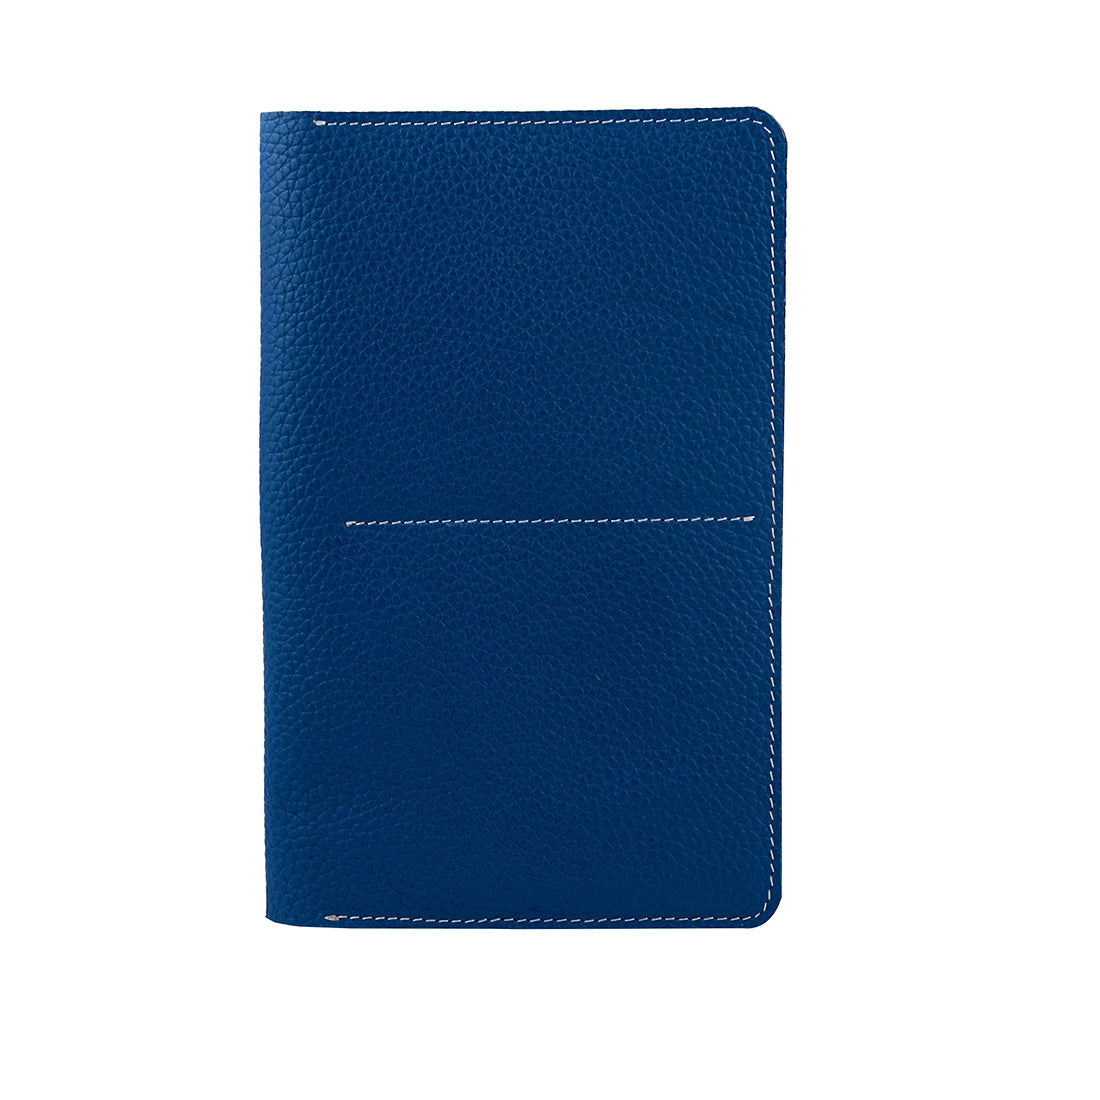 Genuine Grained Leather Unisex Dark Blue Multi-purpose Holder